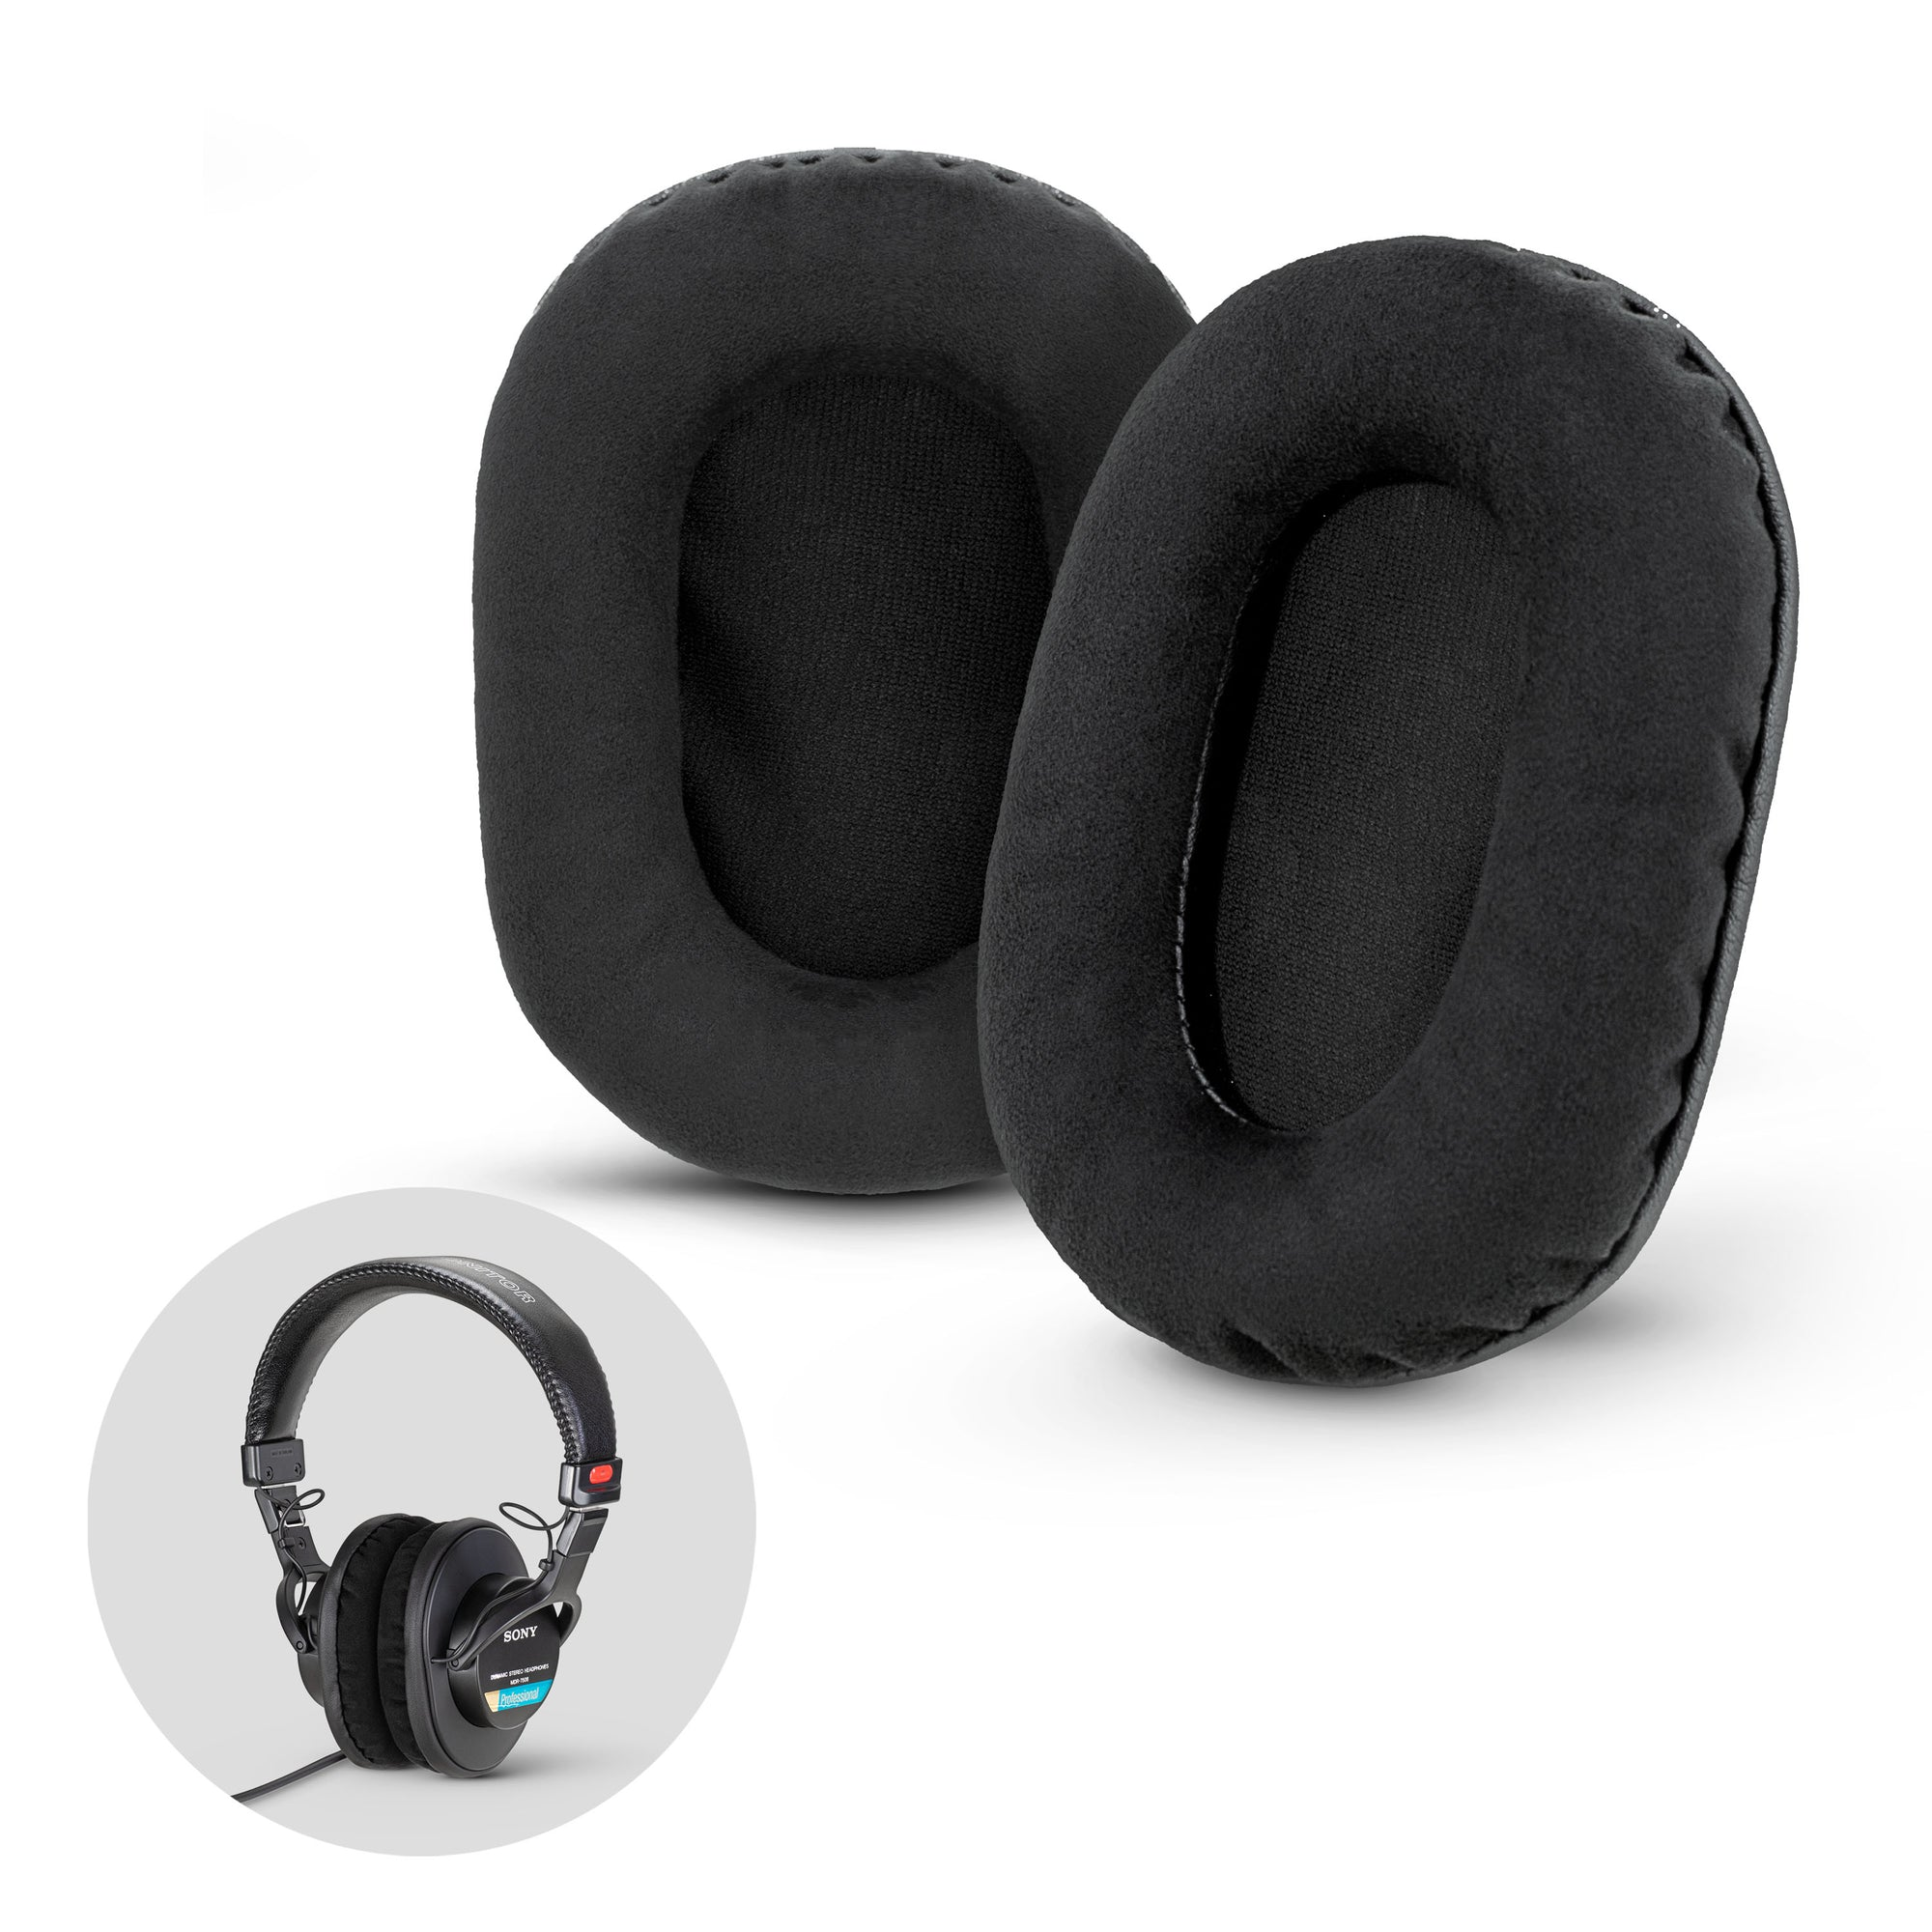 Micro Suede Earpads for Sony MDR-7506 / V6 / CD900ST